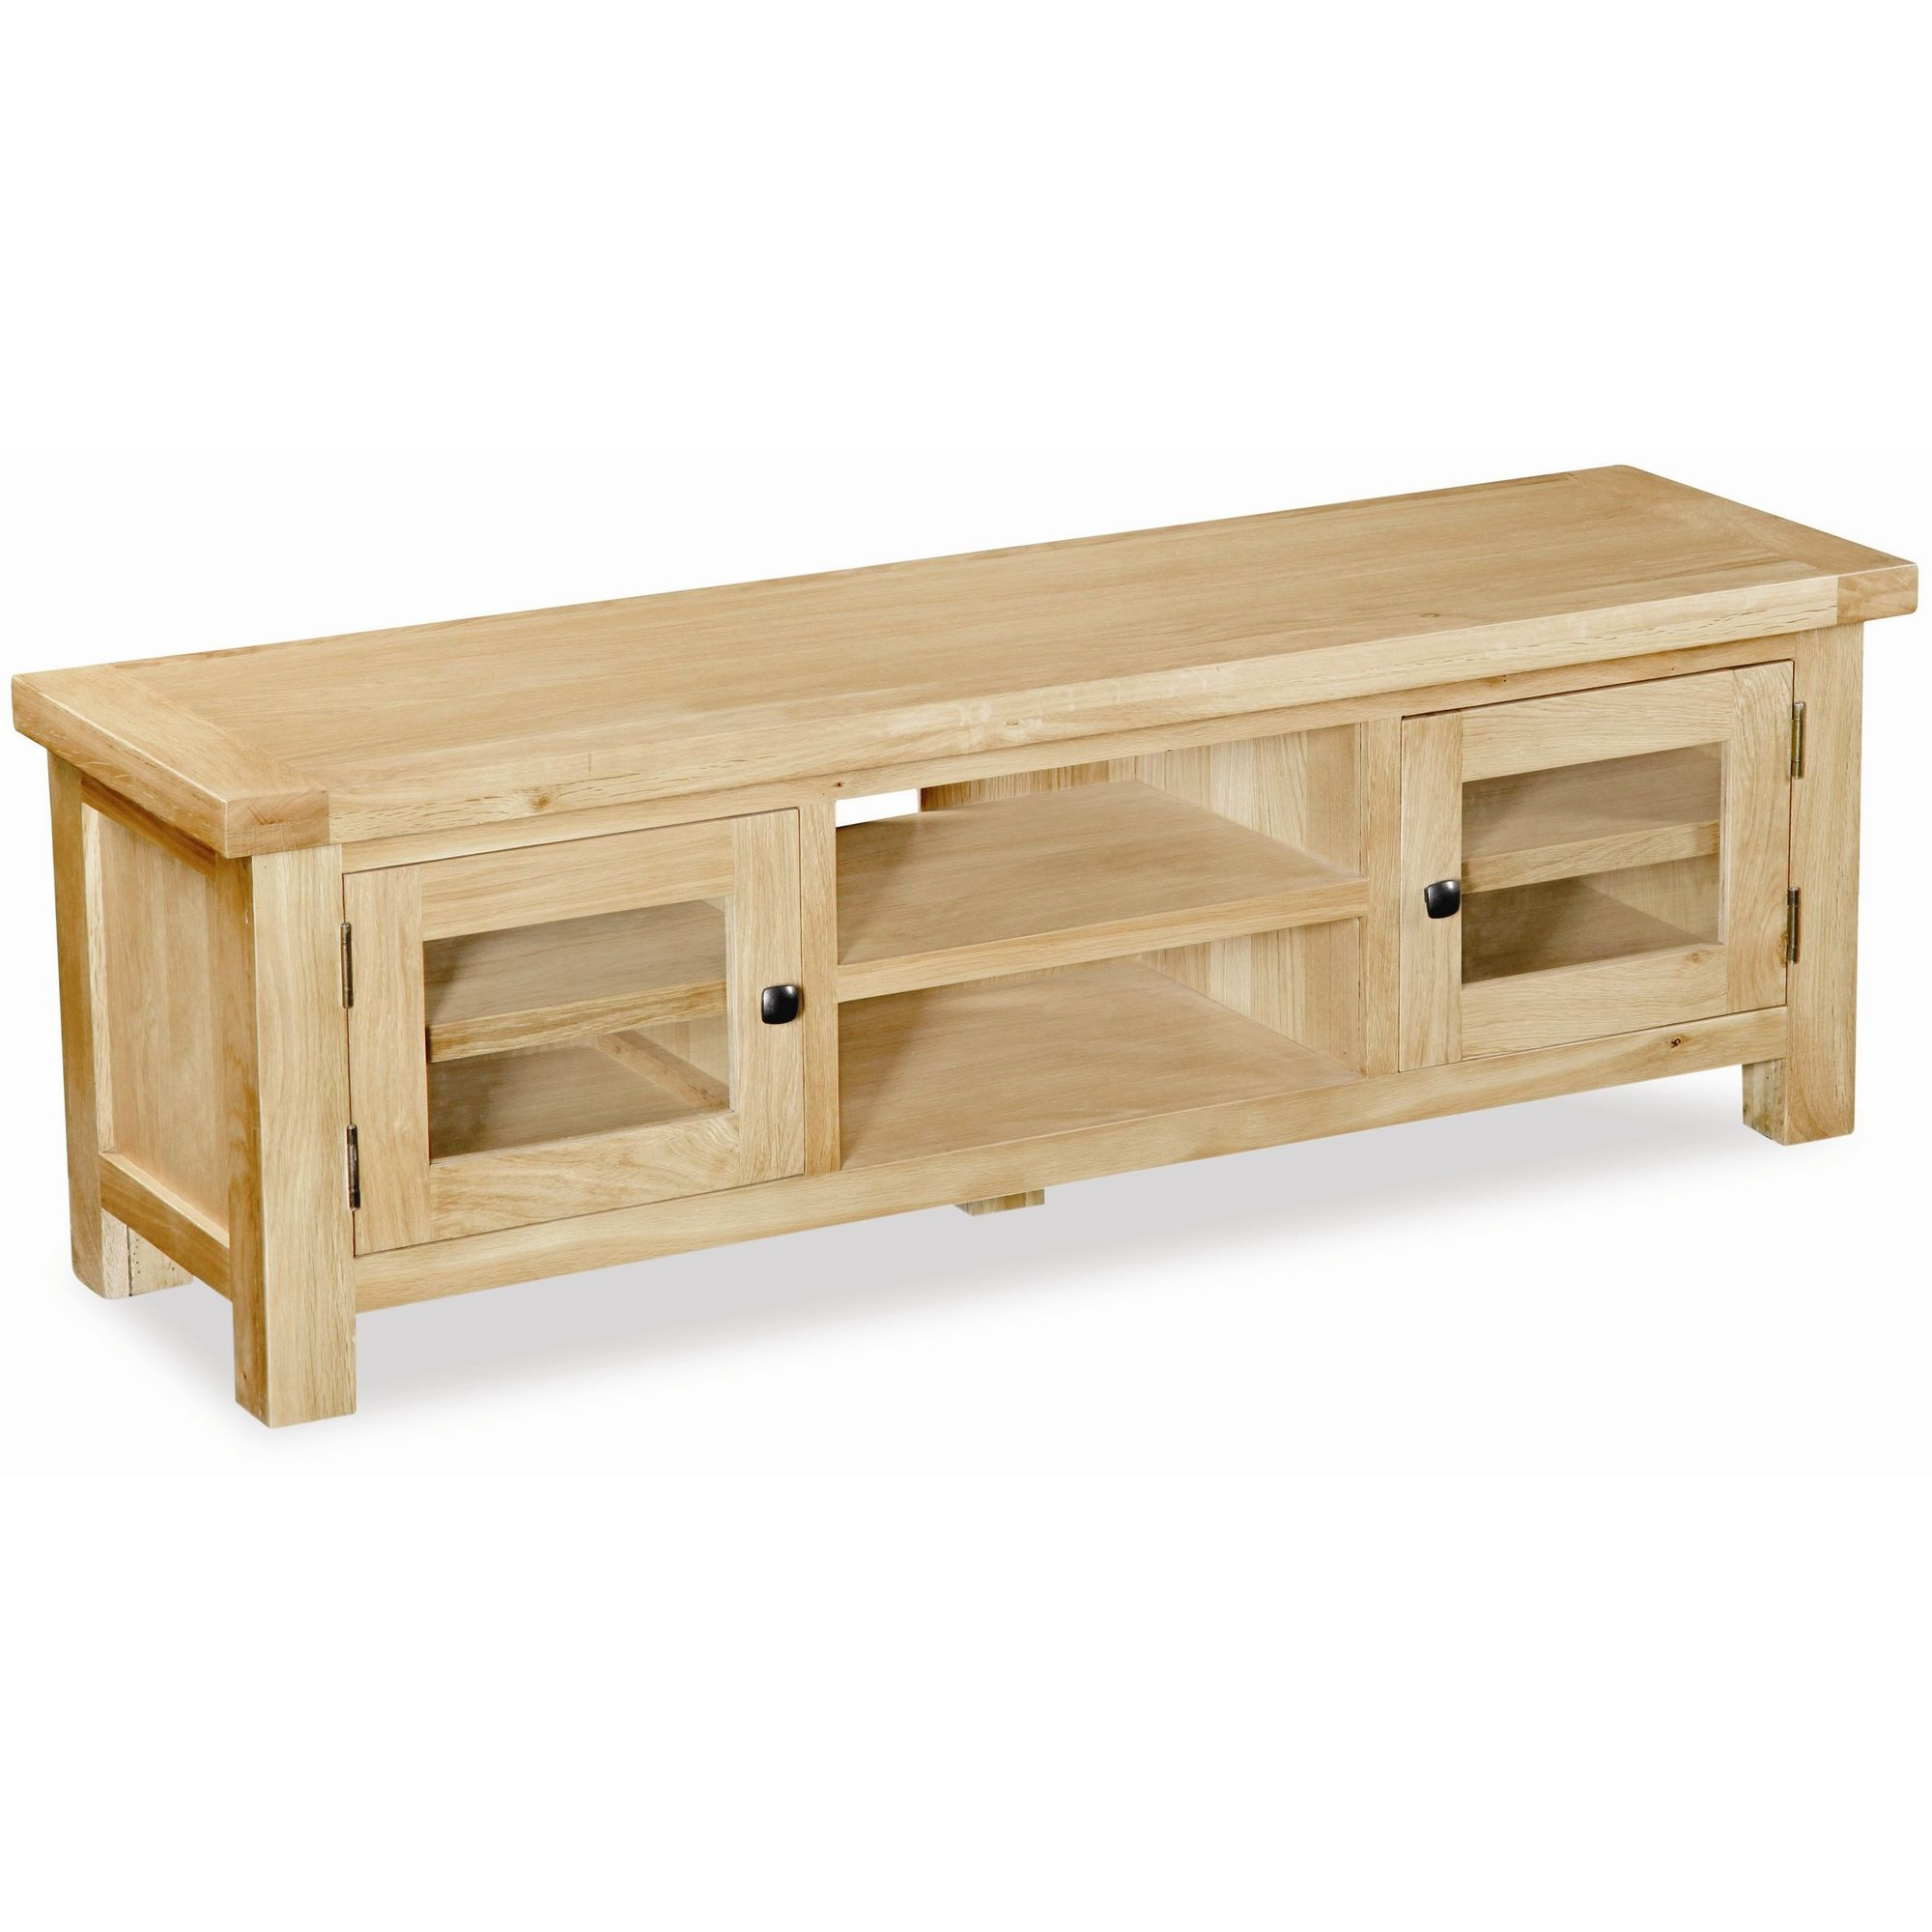 Alterton Furniture Chatsworth TV Cabinet - 150cm at Tesco Direct